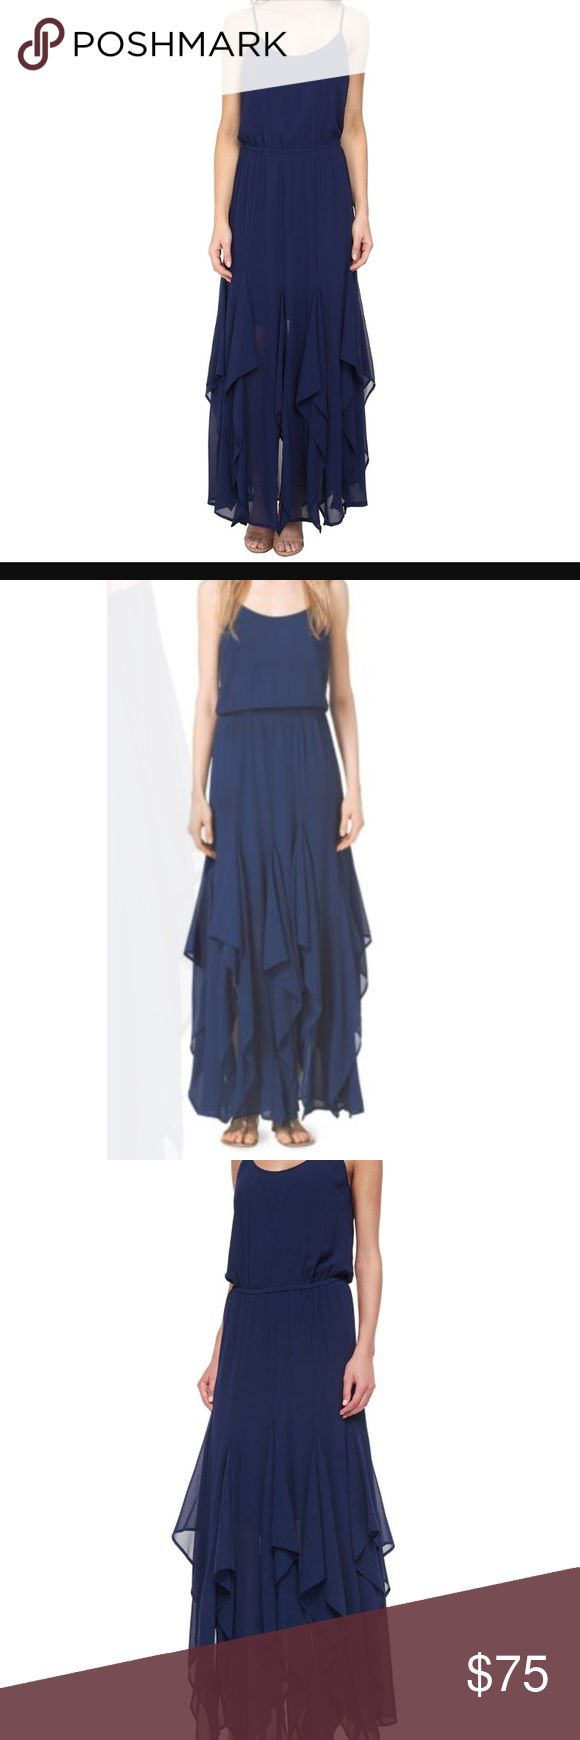 MIchael Kors blue flutter tank maxi dress Used but in great condition - wore only once! Super cute blue flutter dress from MK Michael Kors Dresses Maxi